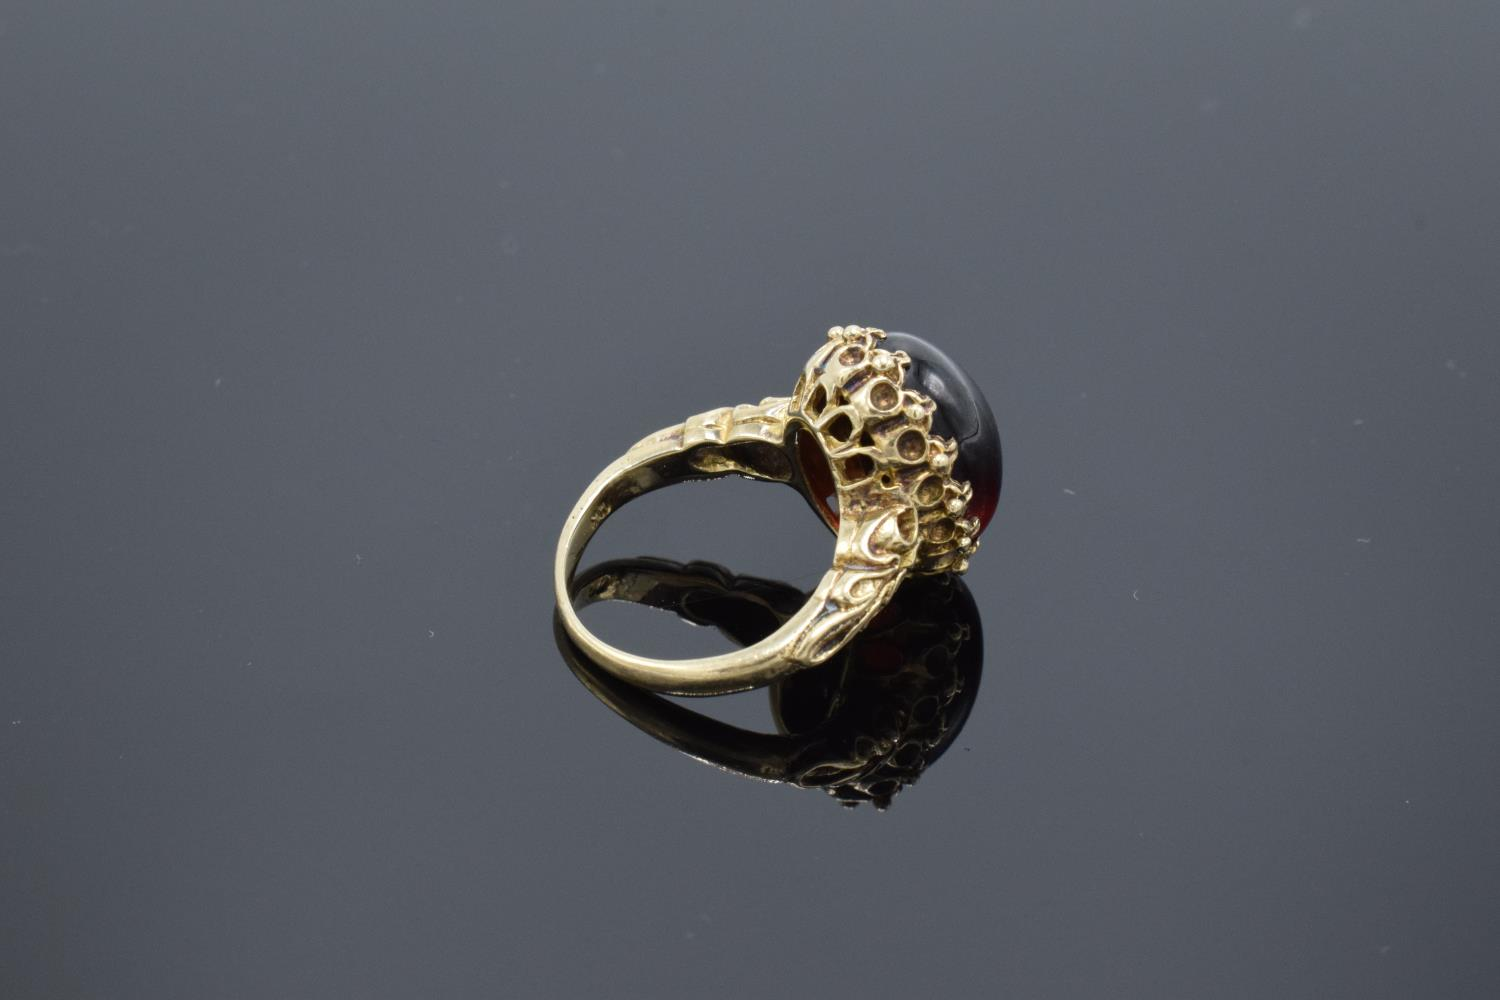 A hallmarked 9ct gold ornate ladies ring set with a polished cabochon stone, gross weight 5.5 grams. - Image 4 of 4